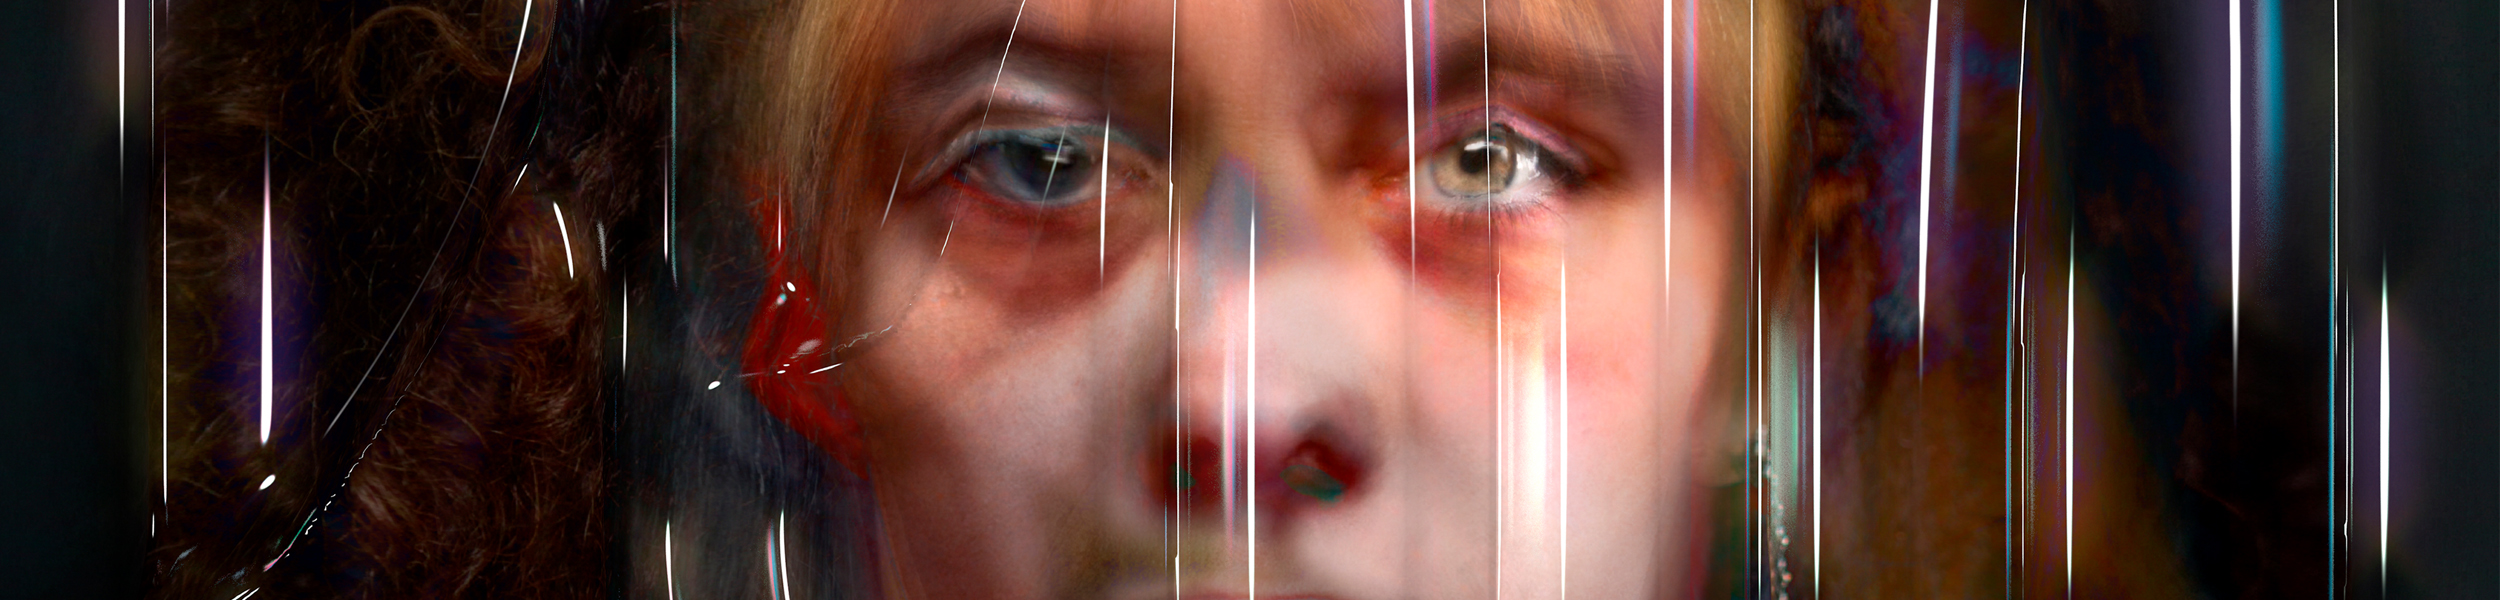 Holly Herndon - New Holly Herndon A/V Shows, Including London